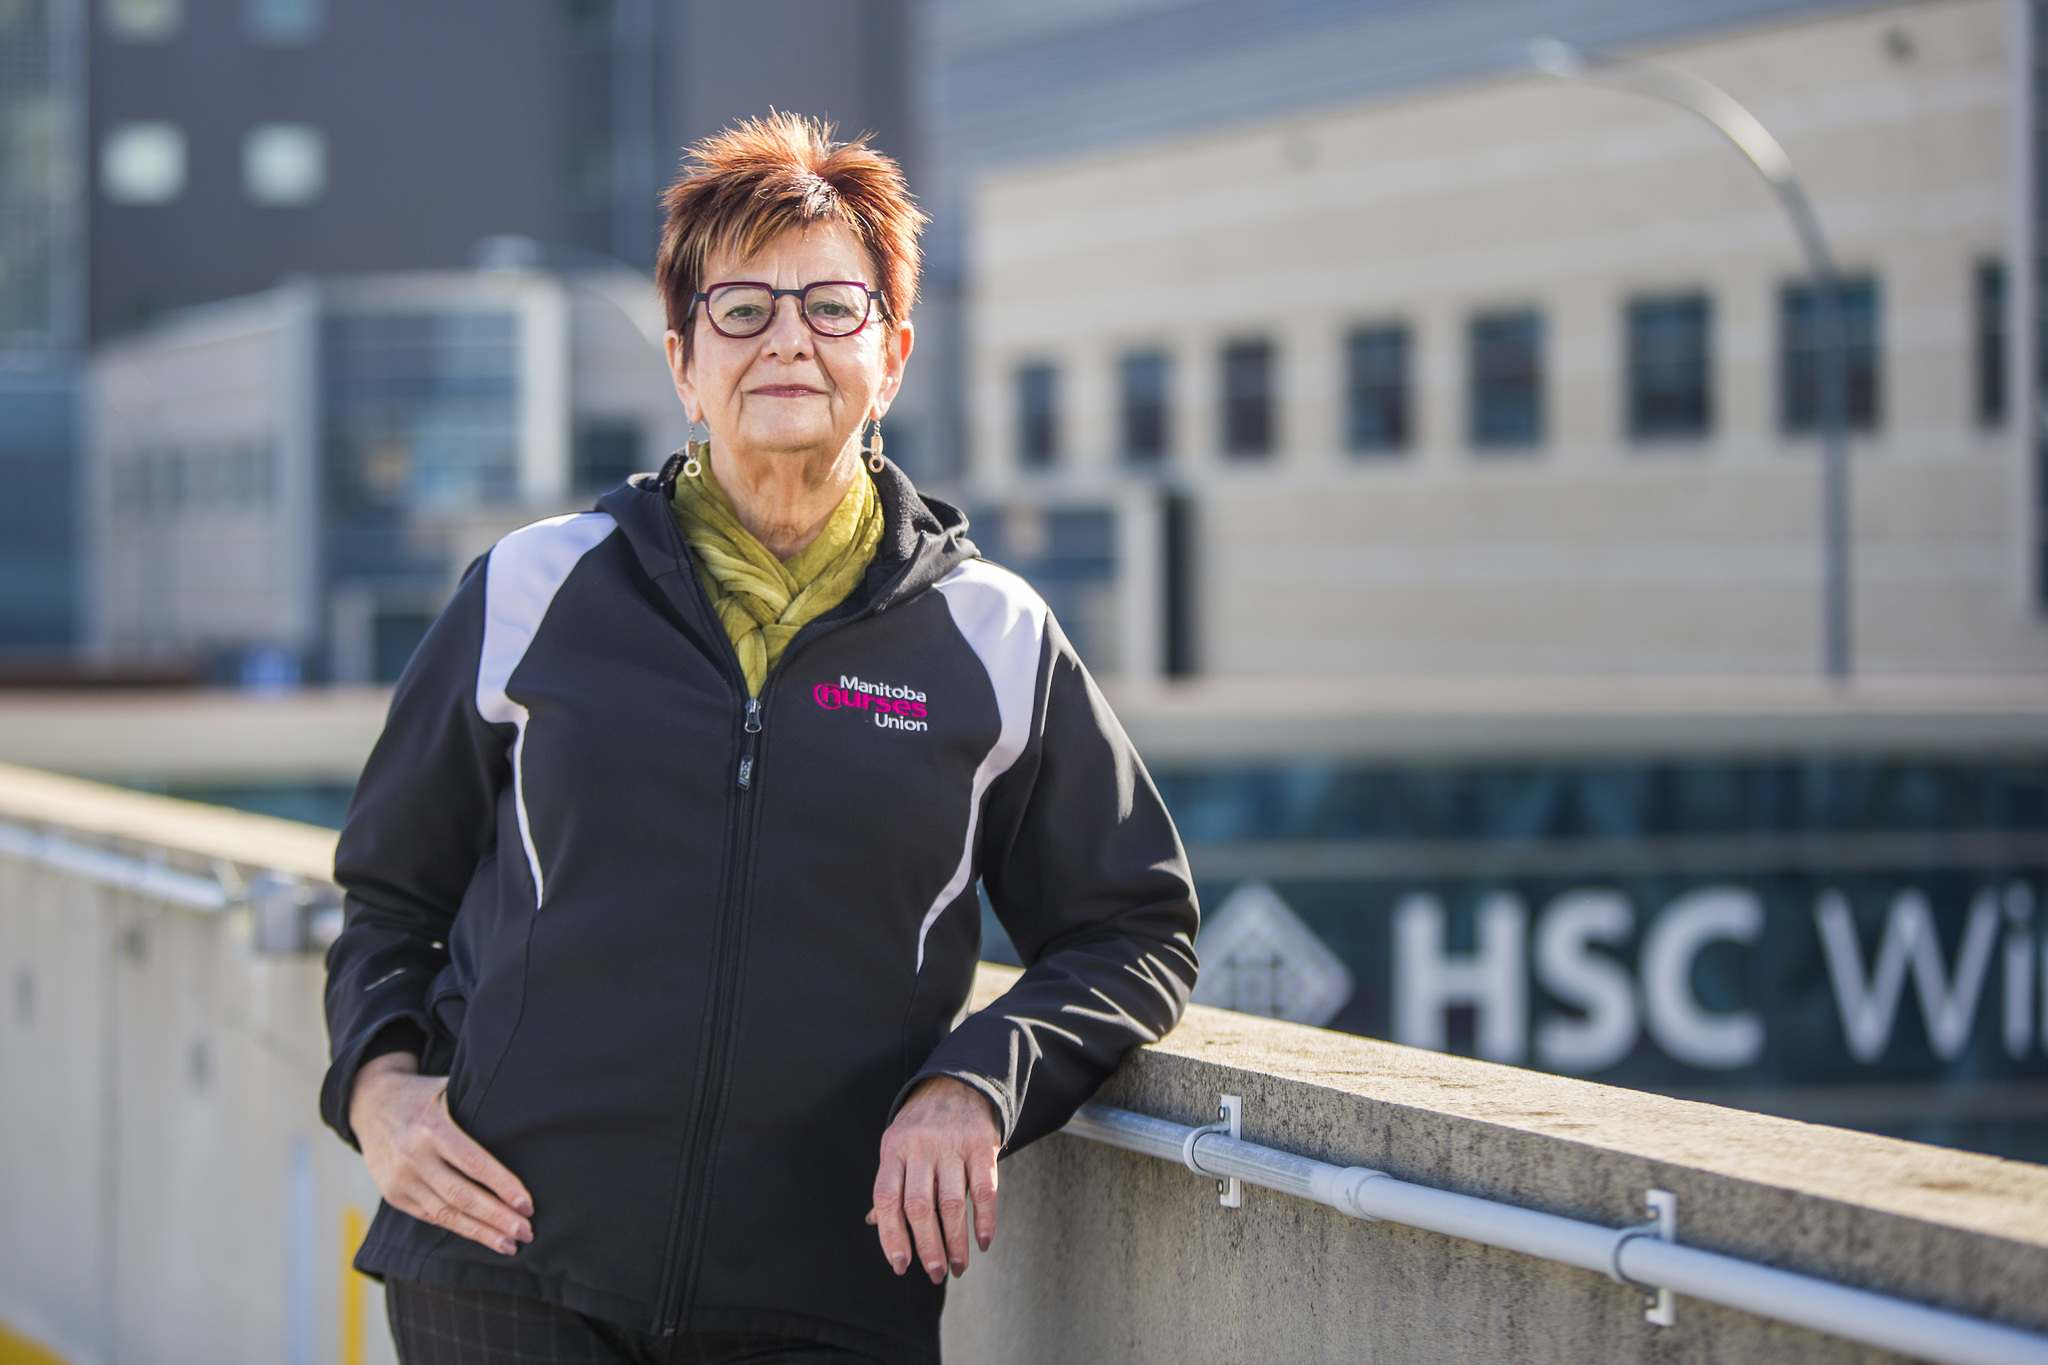 The goal is to get the government to binding arbitration, not to disrupt the health-care system in a pandemic, says Manitoba Nurses' Union president Darlene Jackson. (Mikaela MacKenzie / Winnipeg Free Press files)</p>